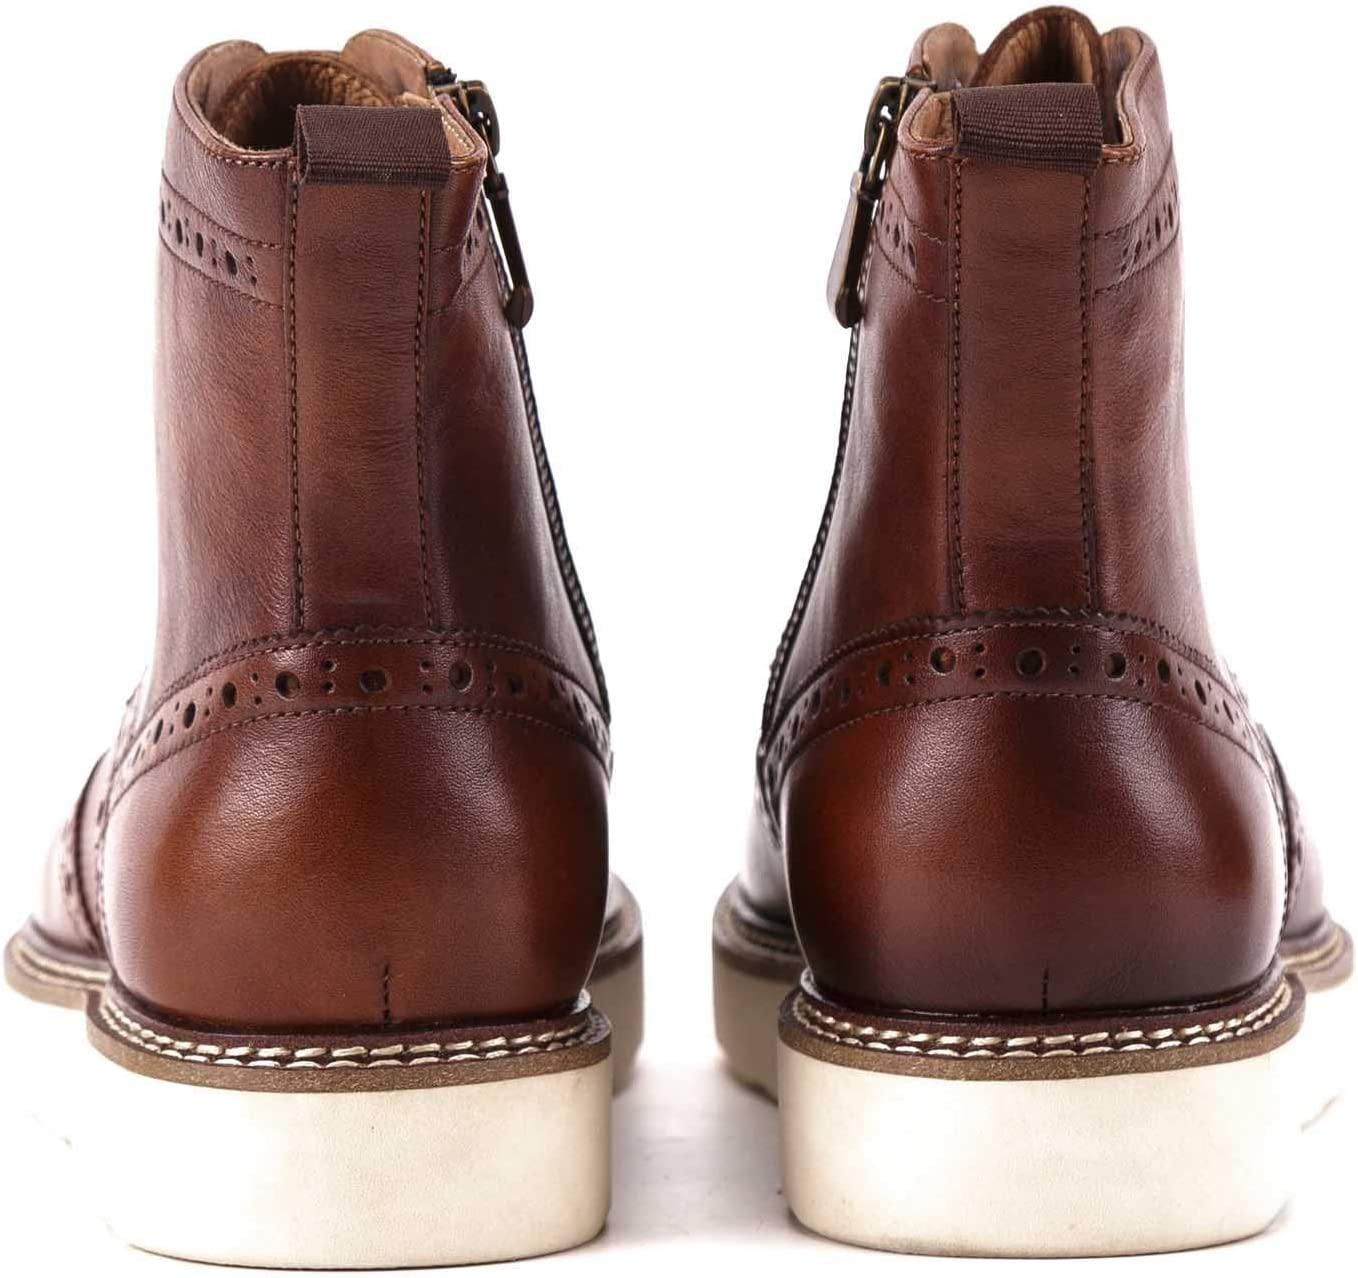 Mens Ankle Boots Lace Up Bracket Shoes Perforated Oxford Shoes